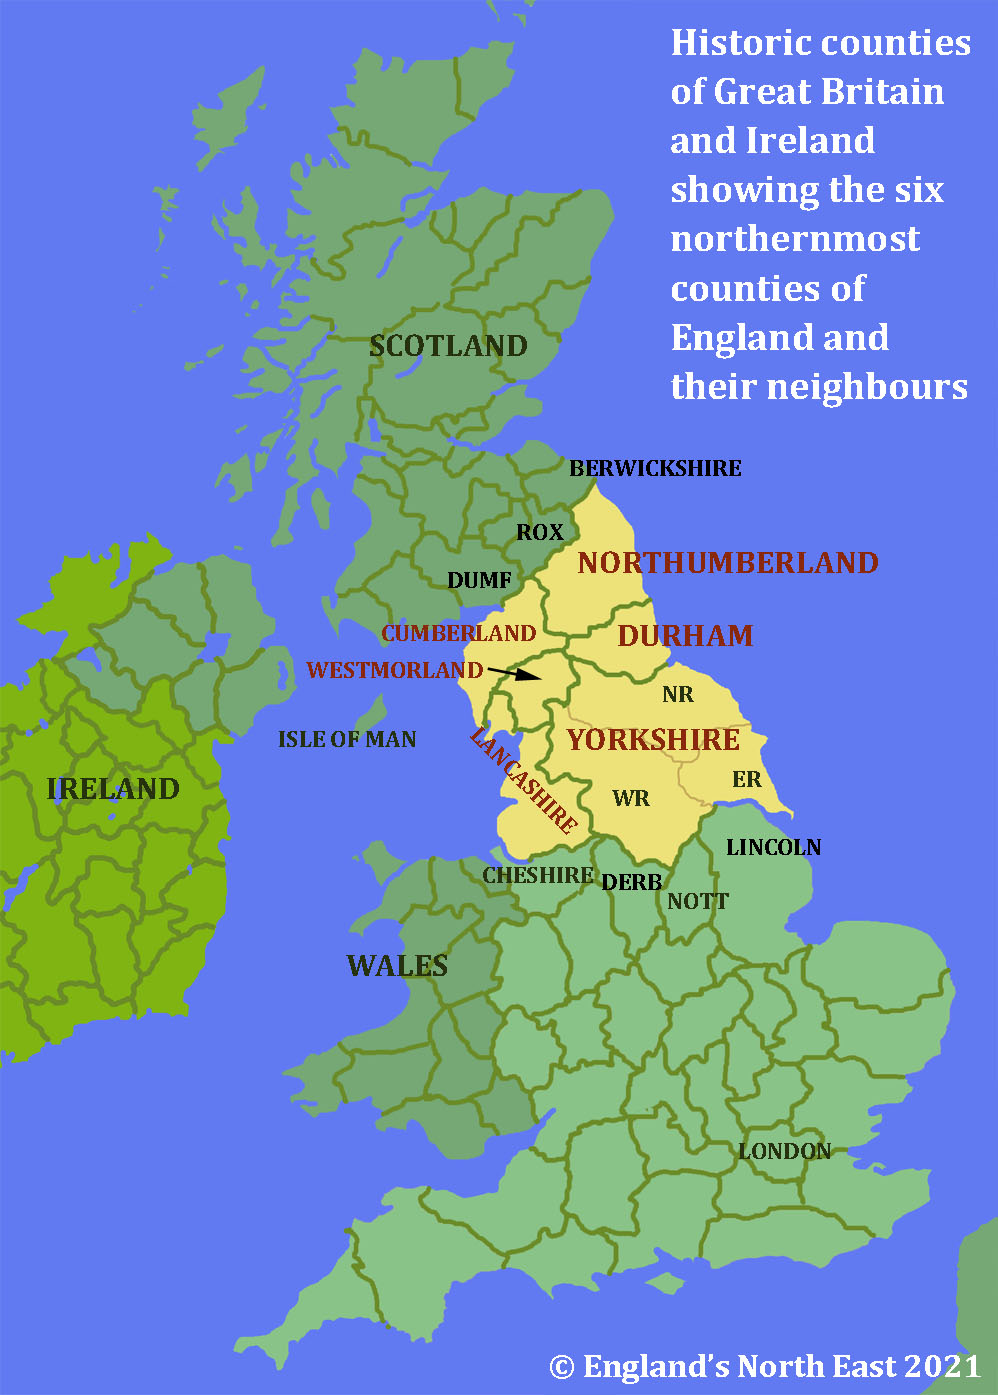 Historic counties of Great Britain and Ireland